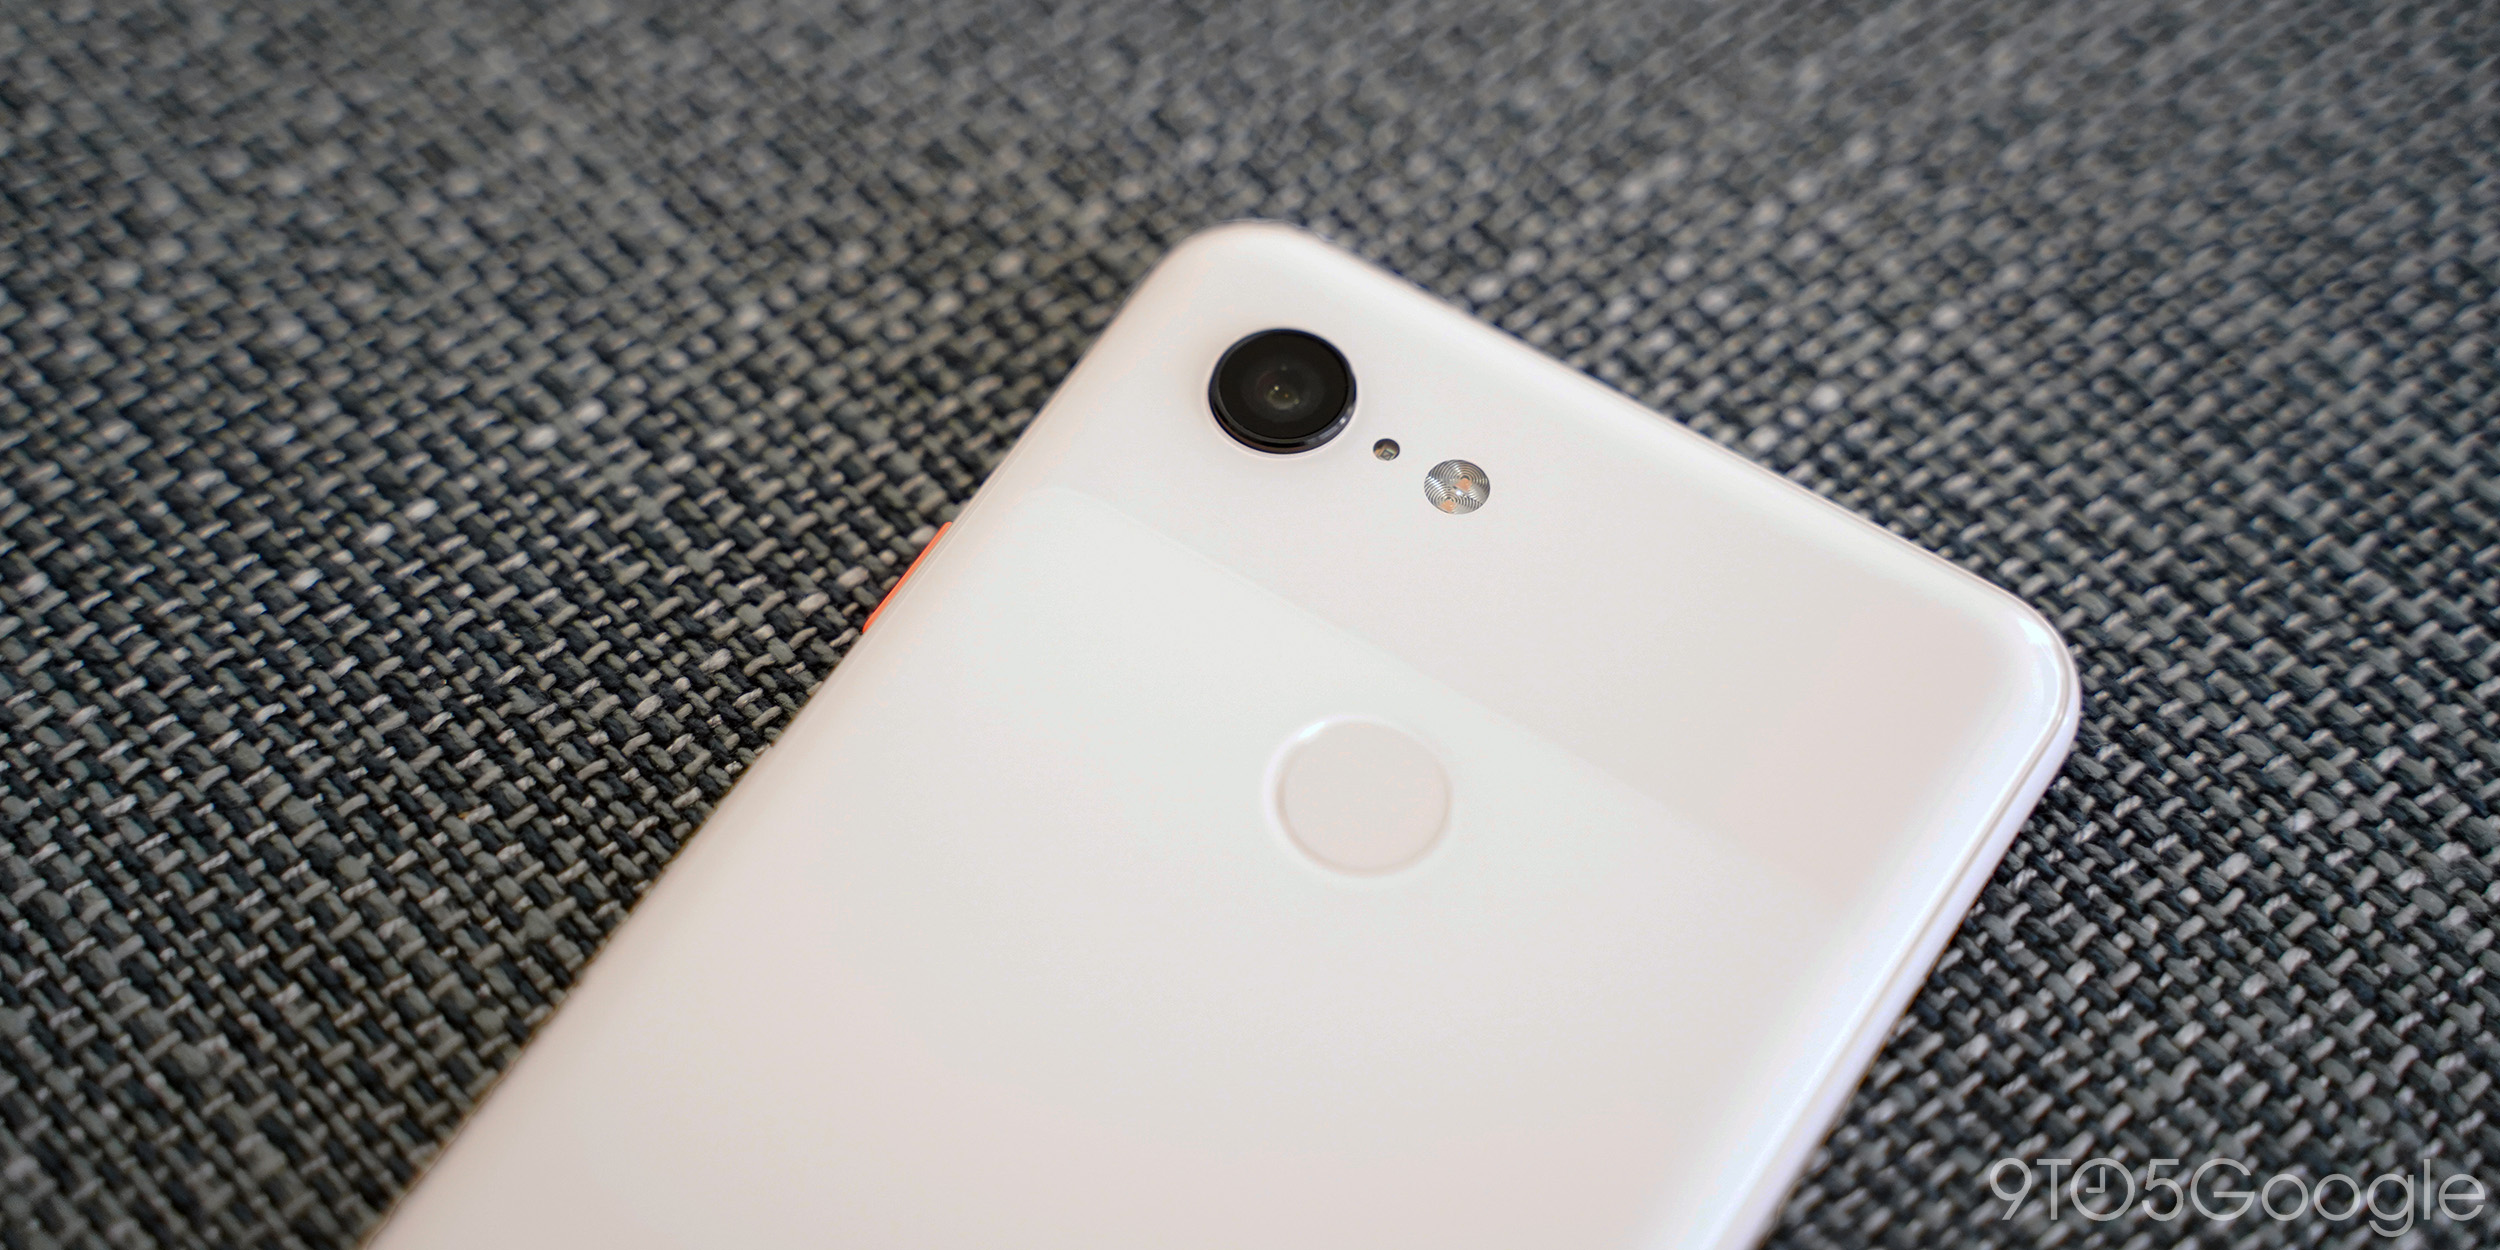 Pixel 3 Android Camera